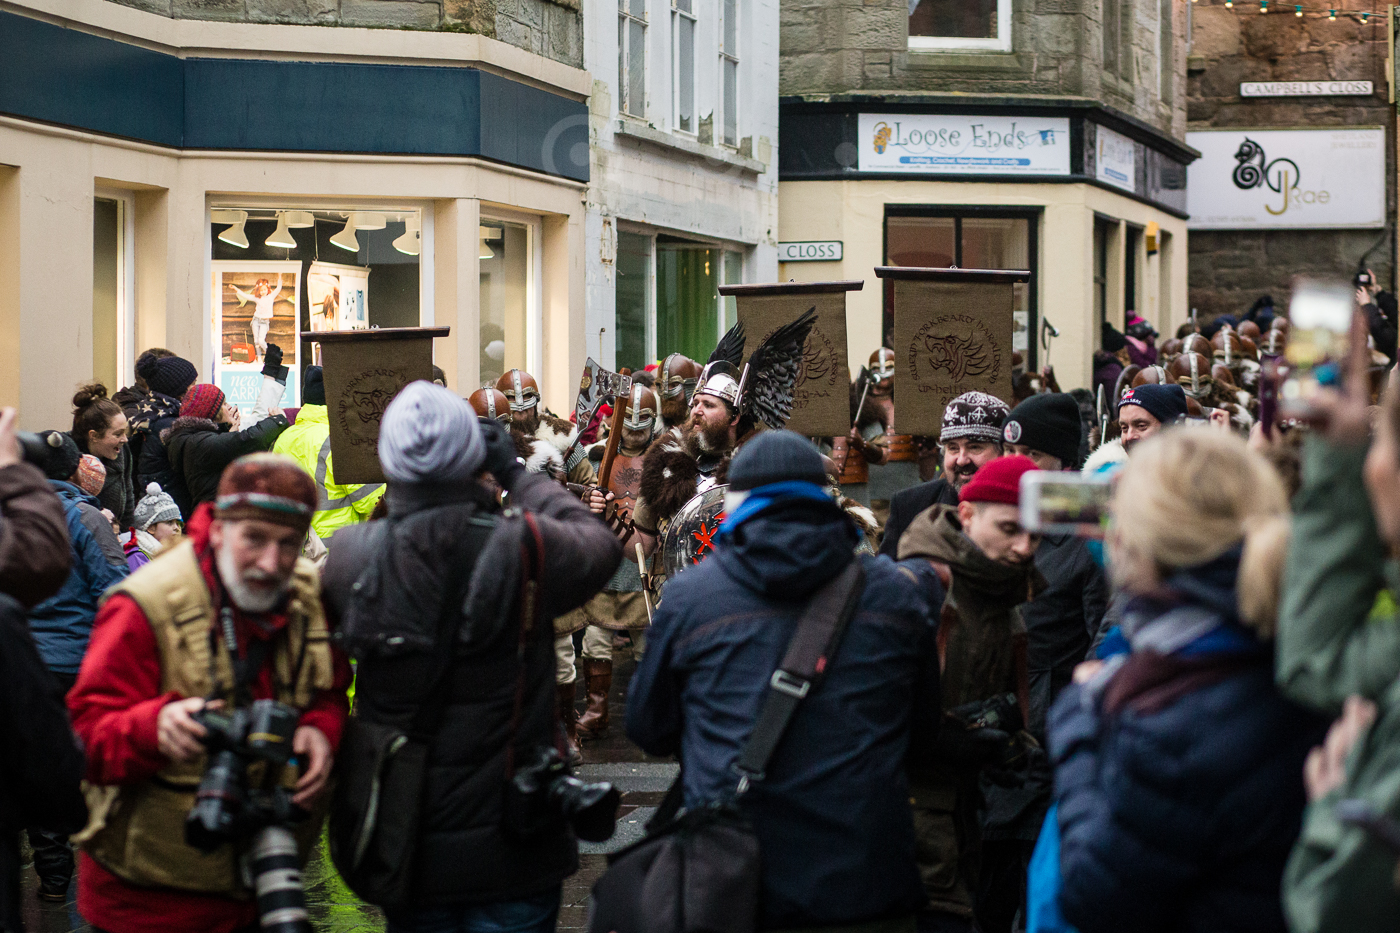 The press throng around the Jarl's Squad as they come through the centre of town.